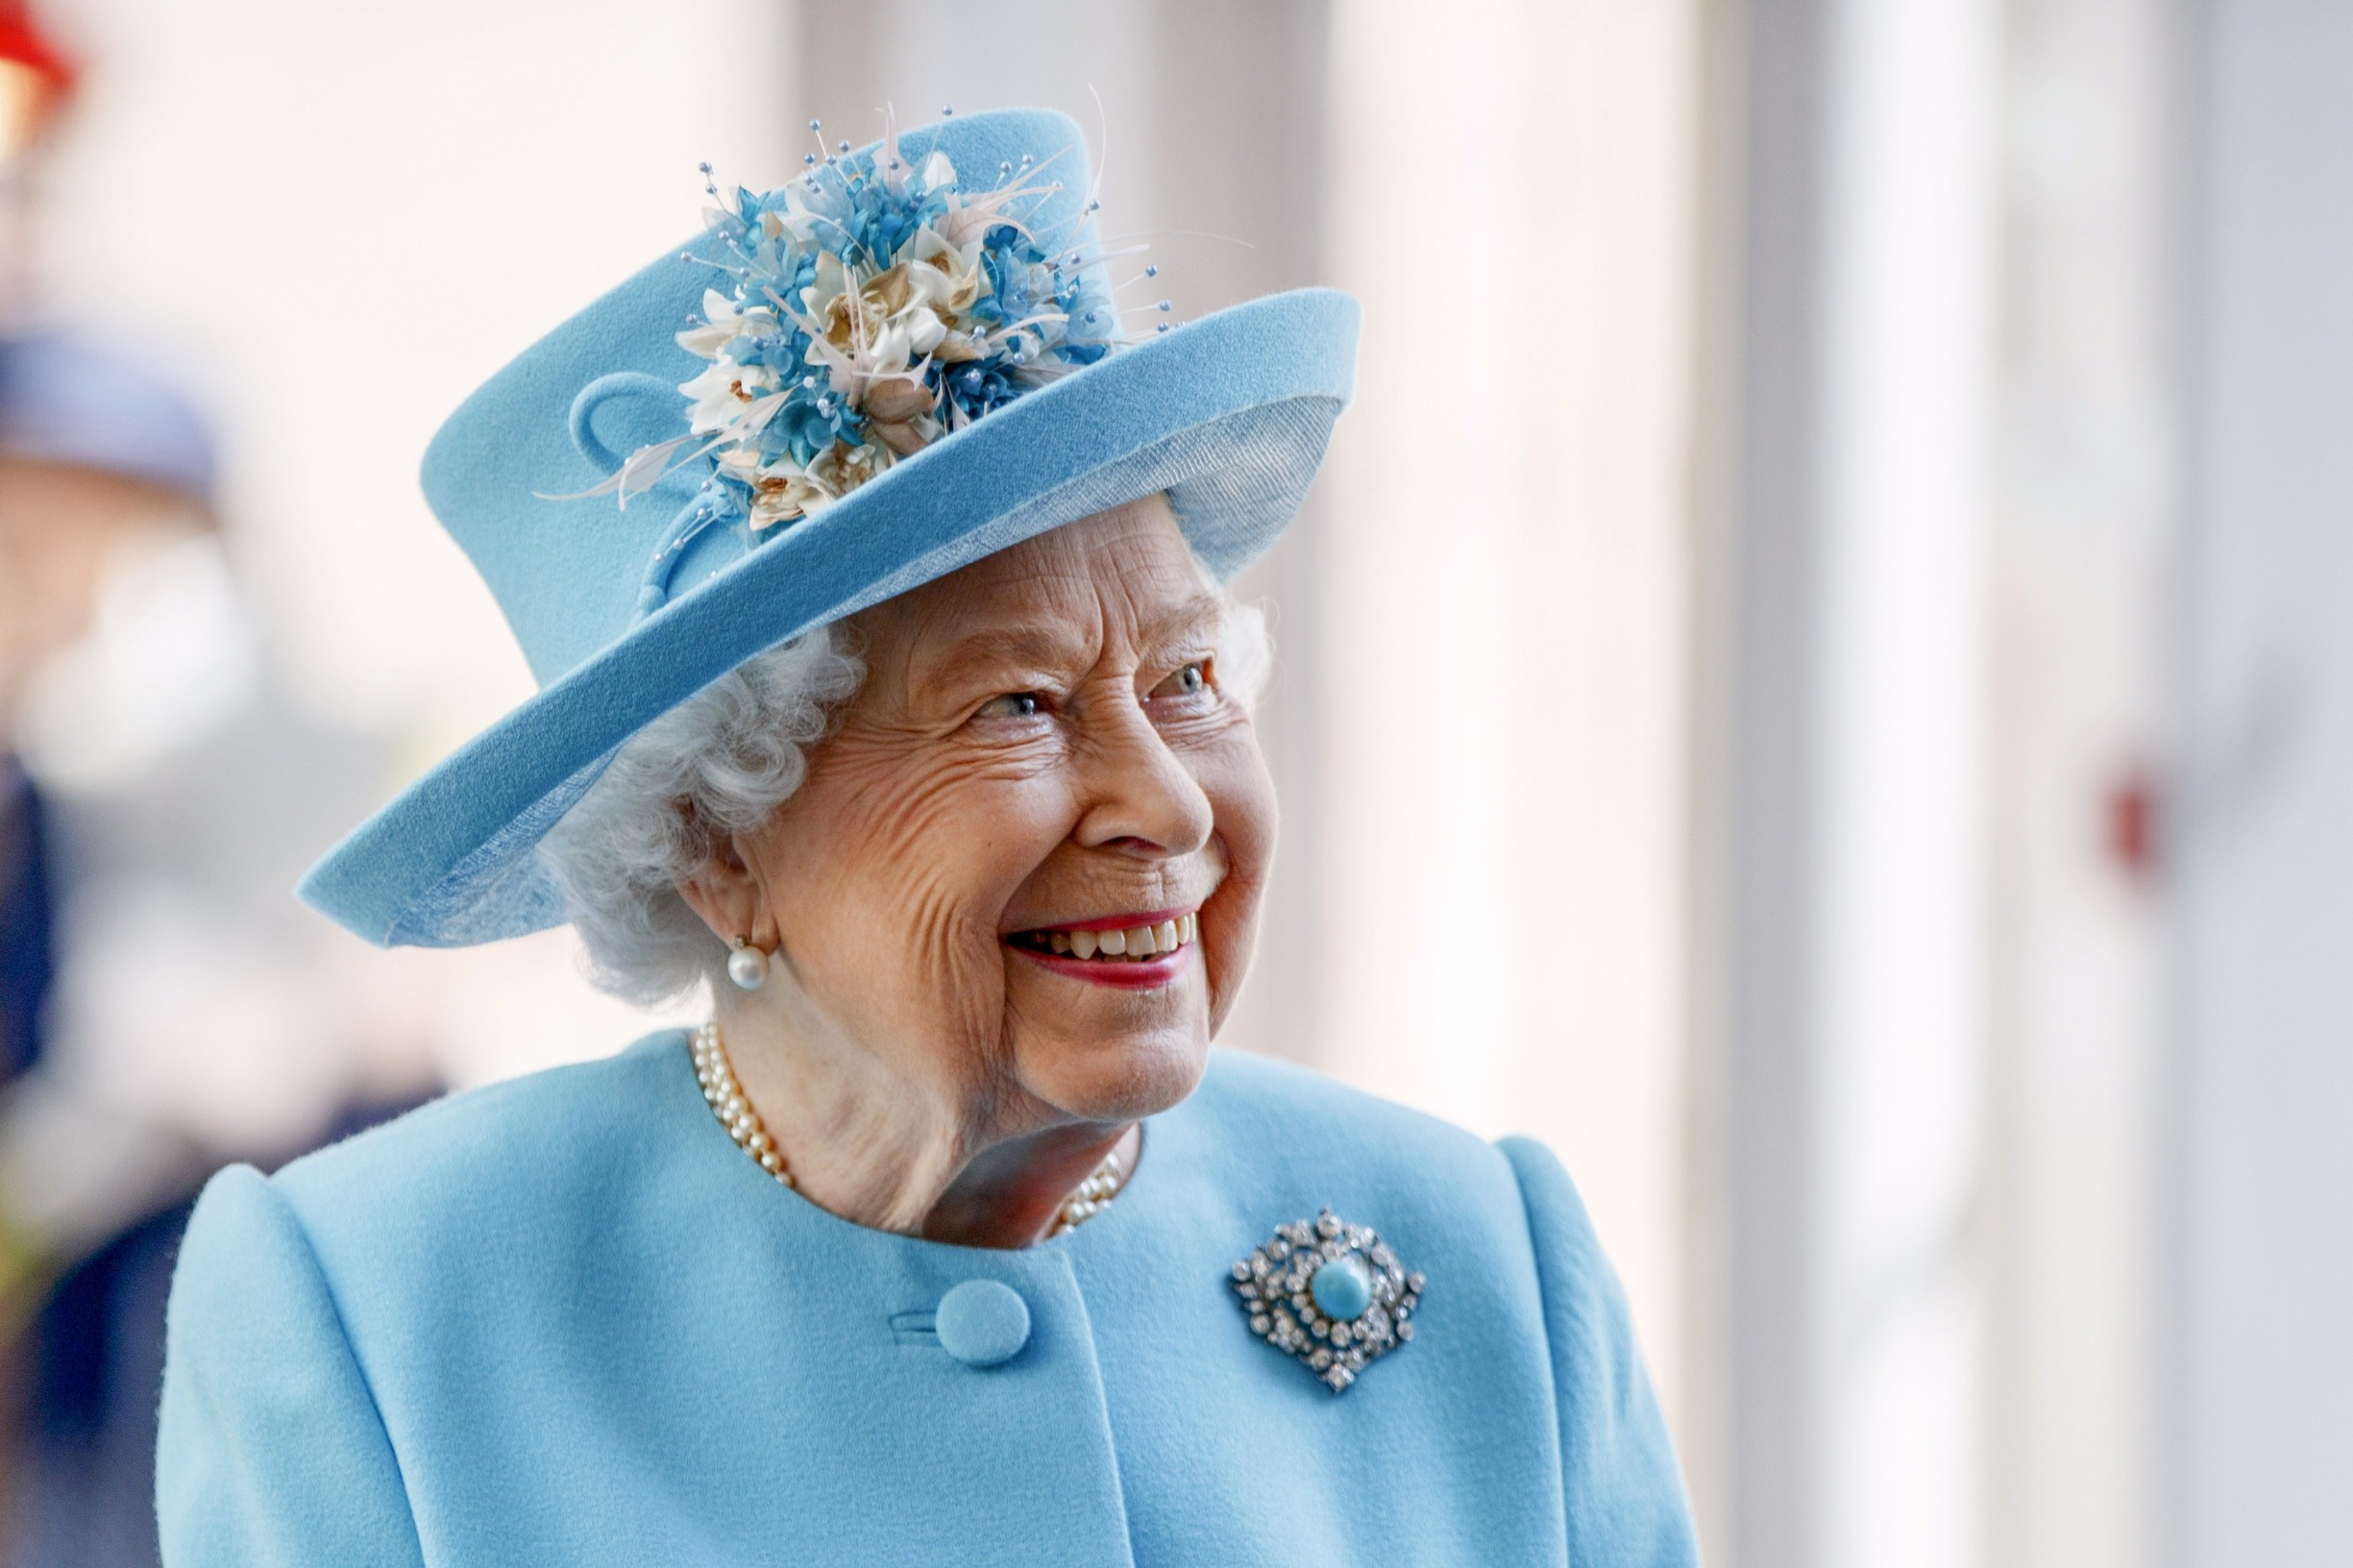 File photo dated 23/05/19 of Queen Elizabeth II smiling during a visit to the headquarters of British Airways at Heathrow Airport, London, to mark their centenary year., Image: 490359733, License: Rights-managed, Restrictions: FILE PHOTO, Model Release: no, Credit line: Tolga Akmen / PA Images / Profimedia